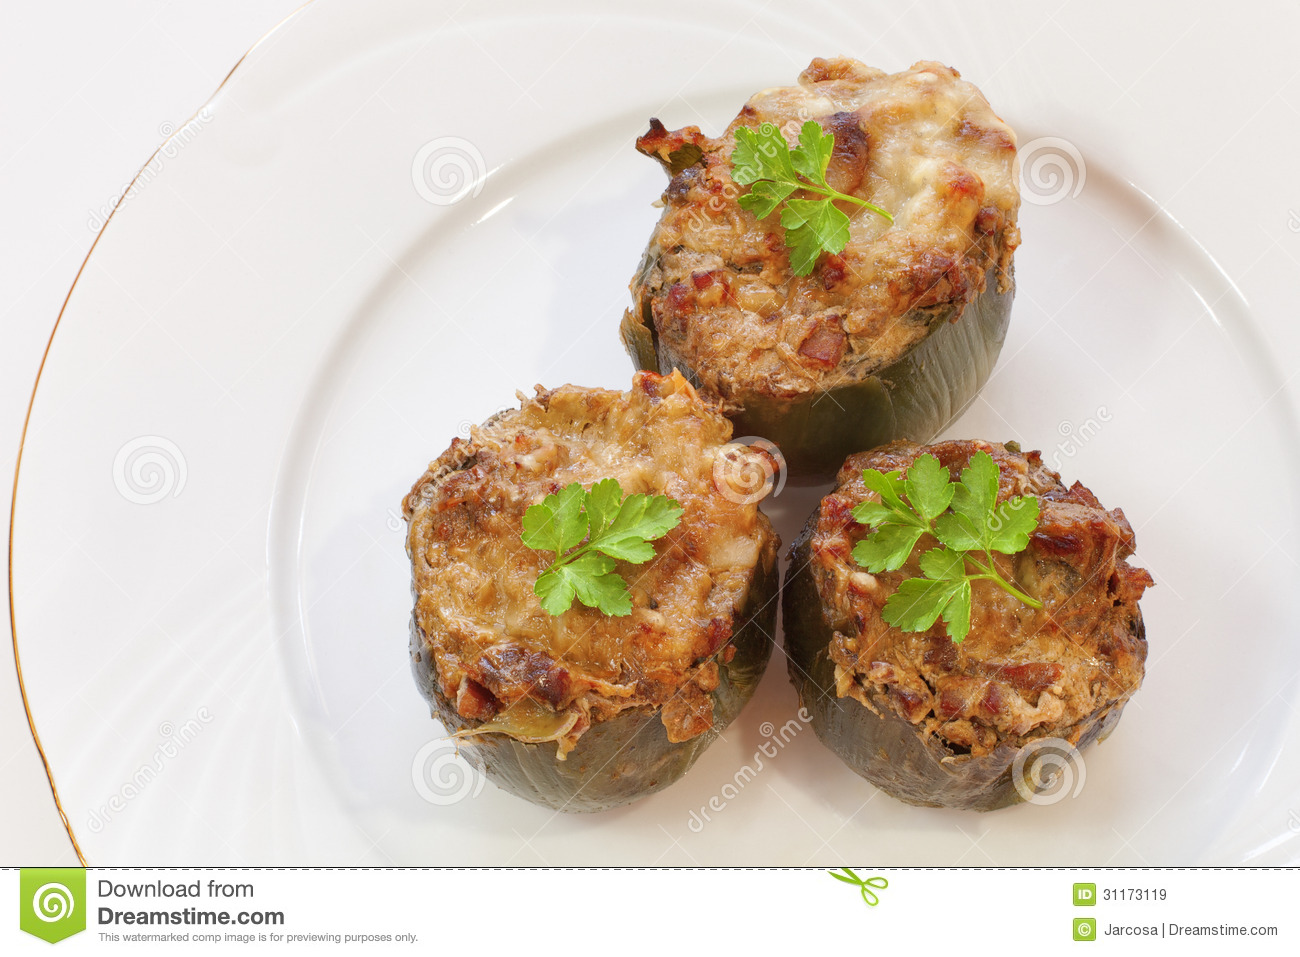 Artichoke Halves Stuffed With Meat Recipe — Dishmaps